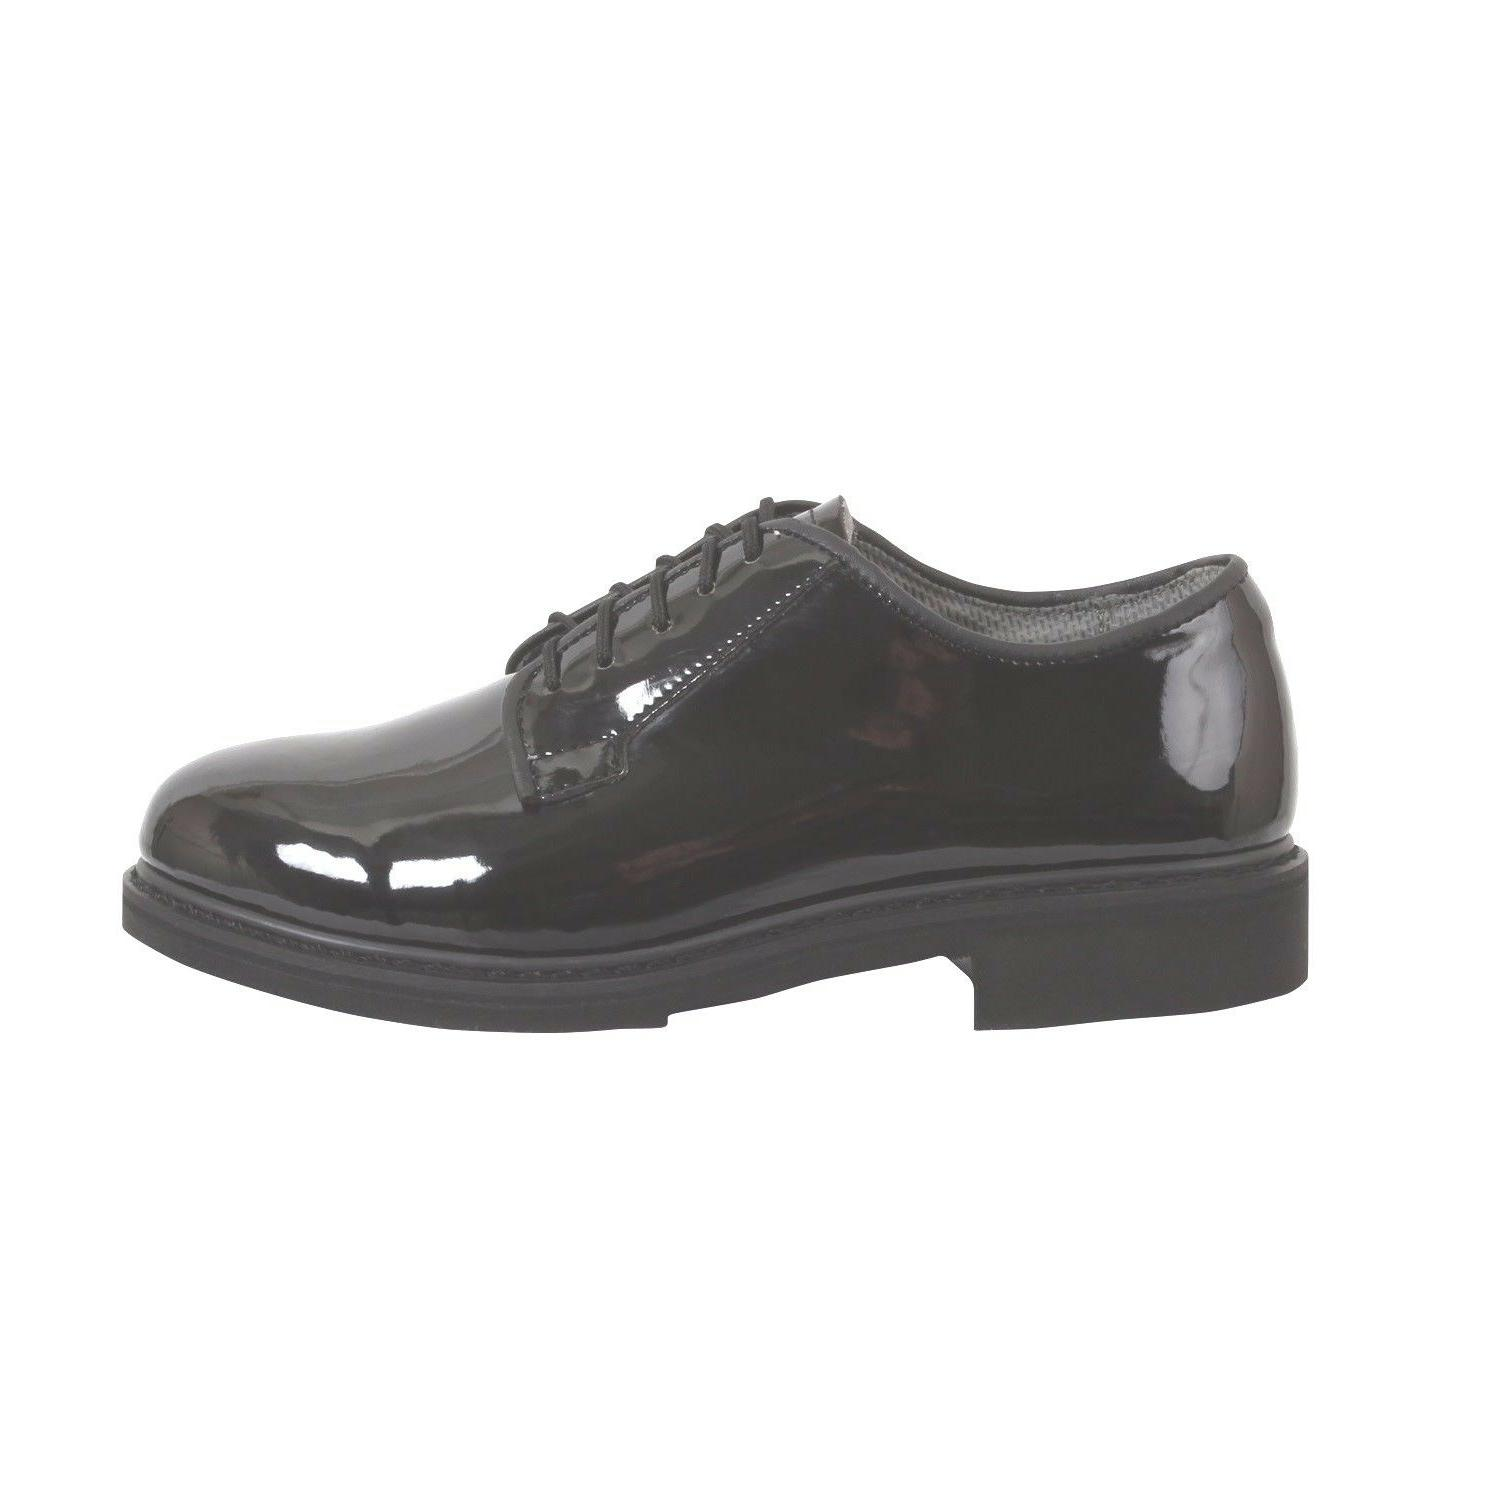 High Oxford Dress Shoes Army 3-15